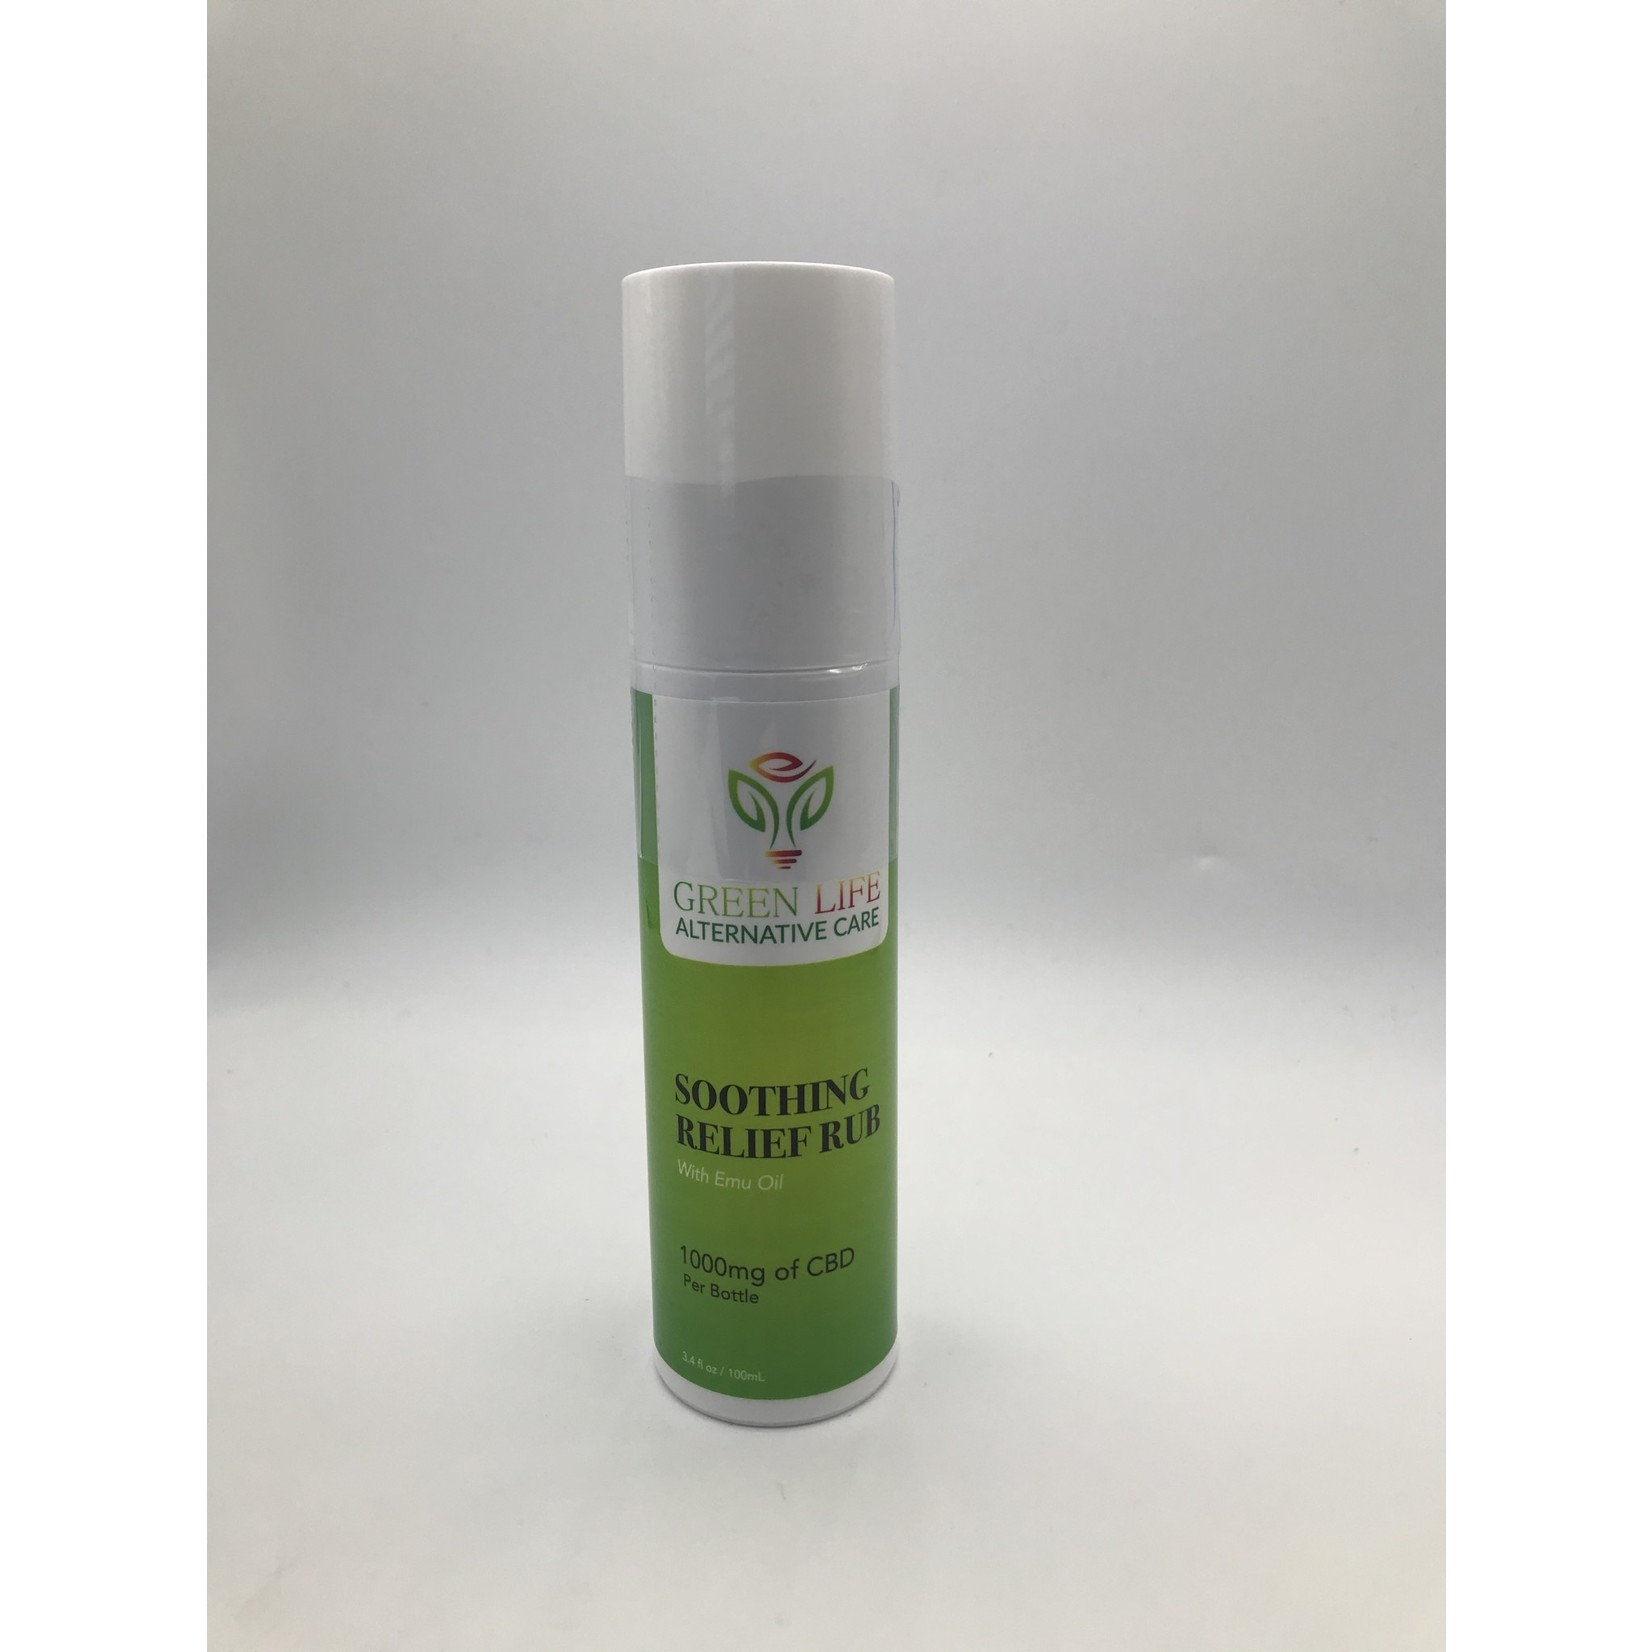 GLAC GLAC Soothing Relief Rub with Emu Oil 1000mg